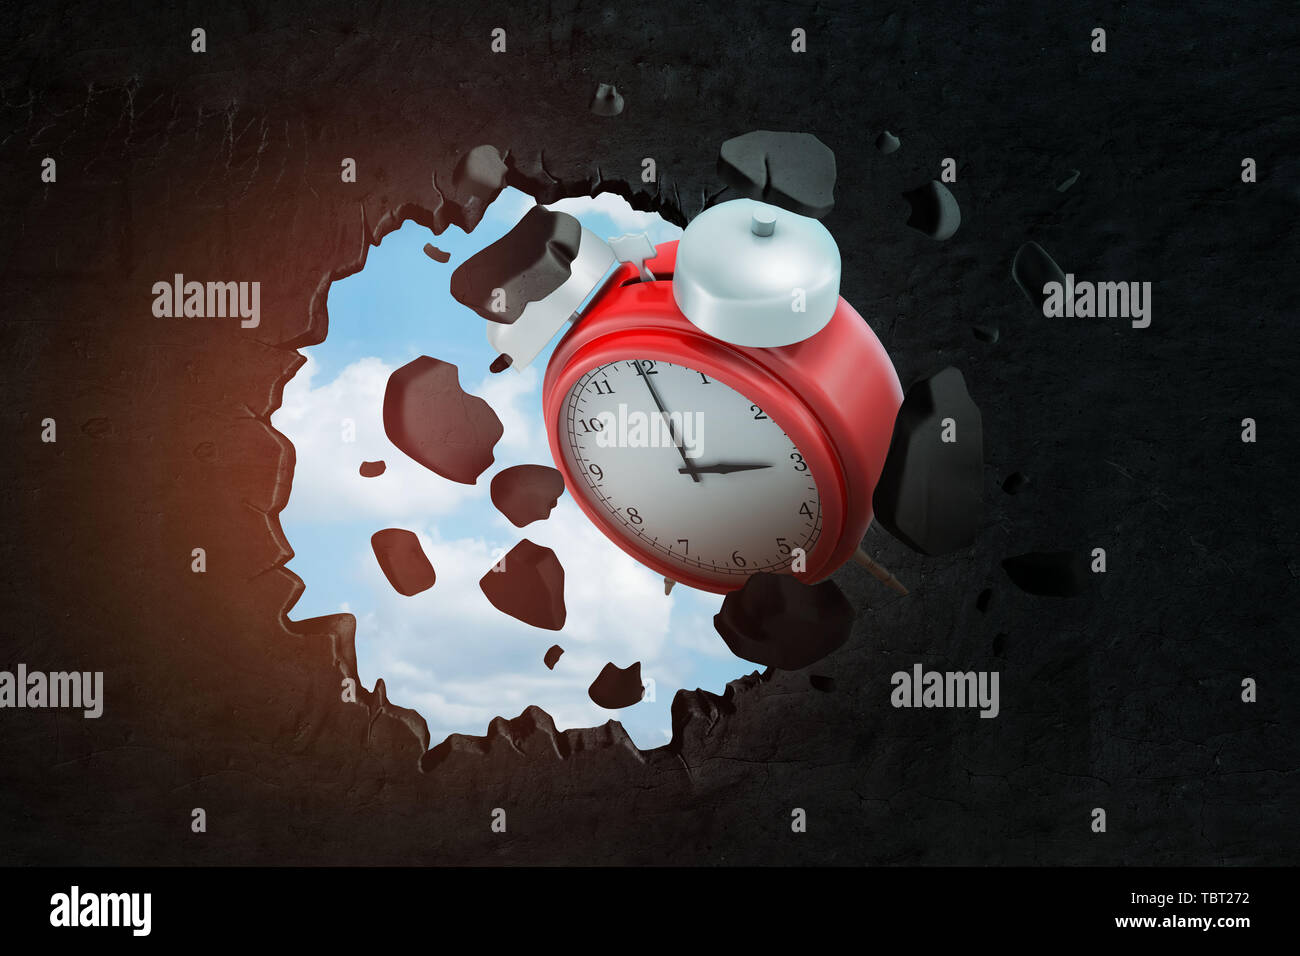 3d close-up rendering of red alarm clock punching big hole in black wall with pieces of wall flying around and with blue sky seen through hole. - Stock Image